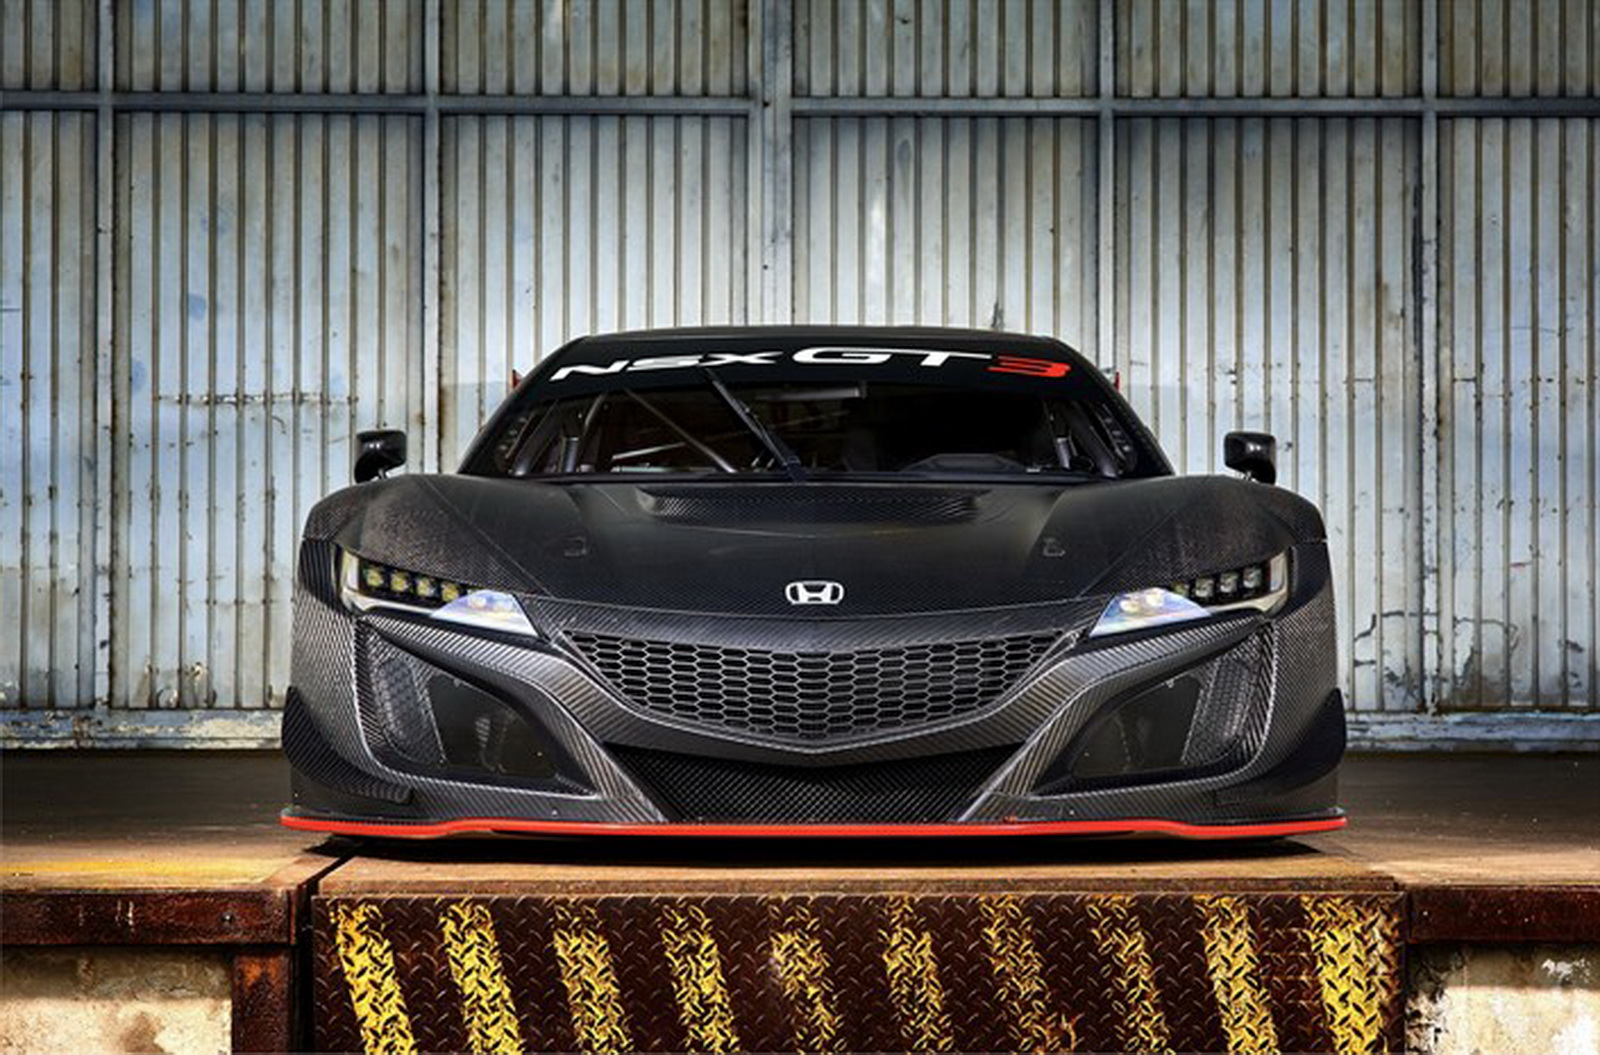 2017 Acura Nsx For Sale >> Honda Launches Global NSX GT3 Customer Racing Program | Carscoops